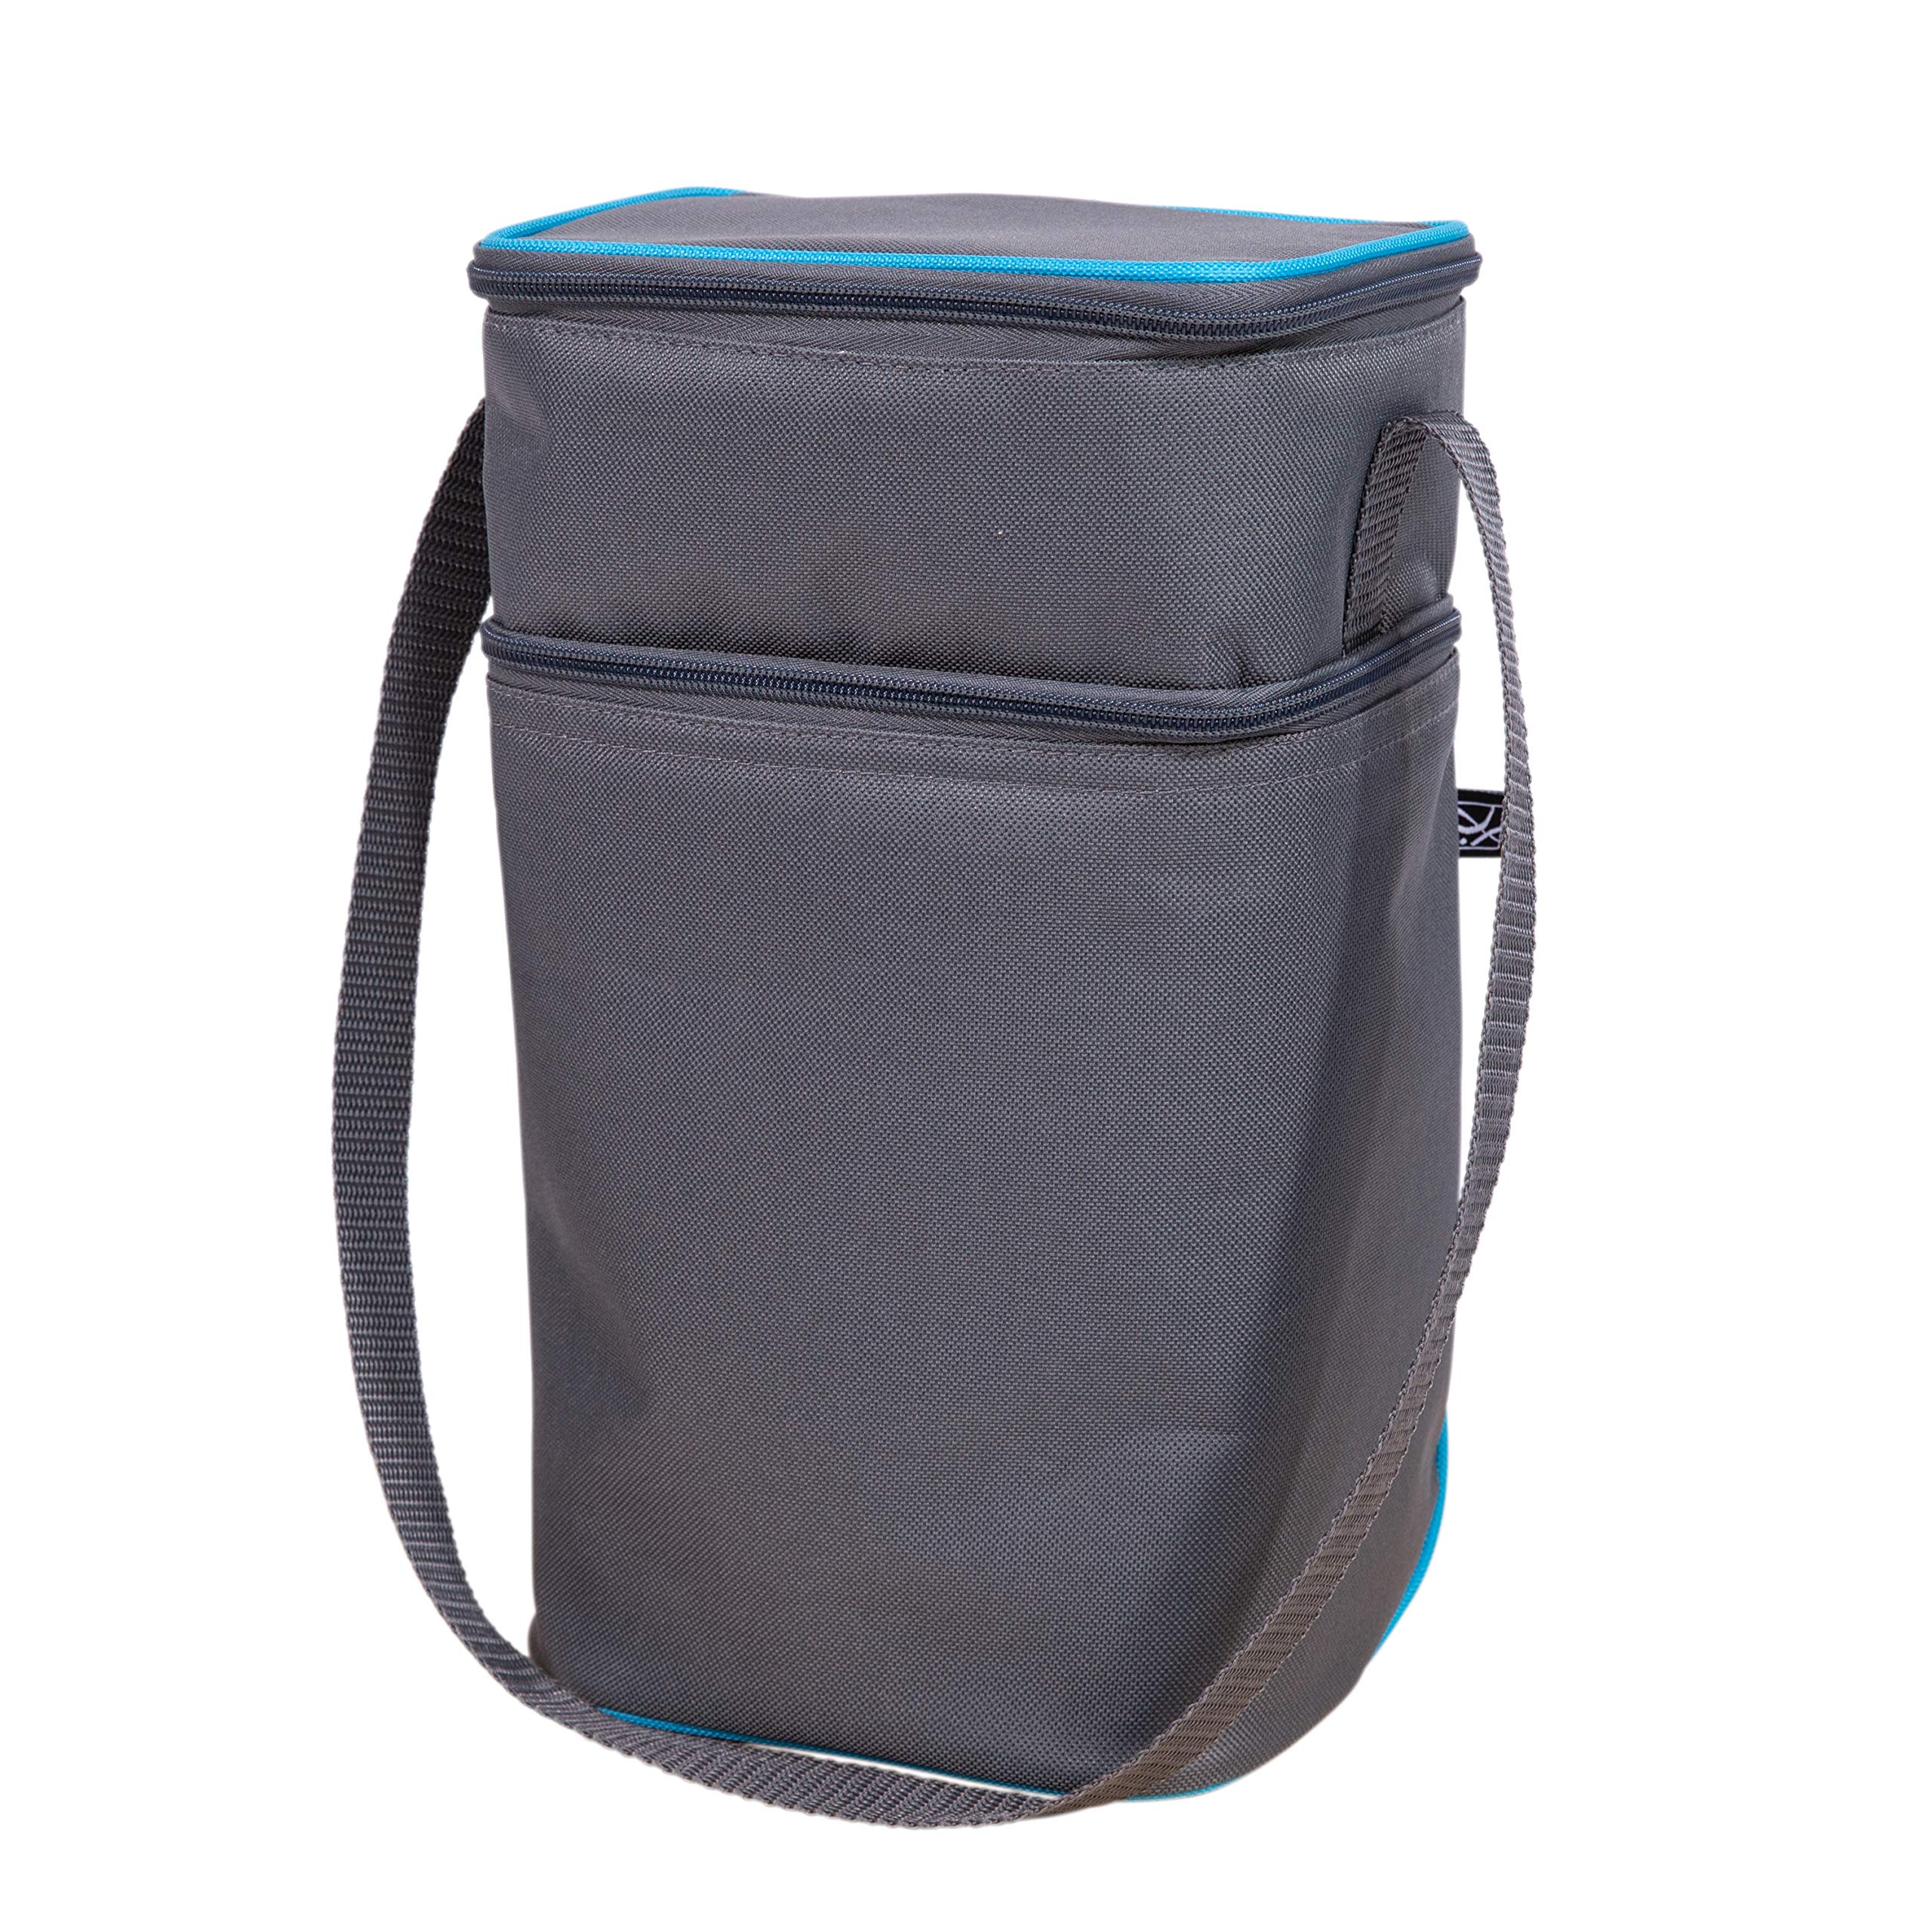 J.L. Childress 6 Bottle Cooler, Insulated Breastmilk Cooler & Lunch Bag for Baby Food & Bottles, Leak-Proof & Heat-Sealed, Ice Pack Included, Grey and Teal